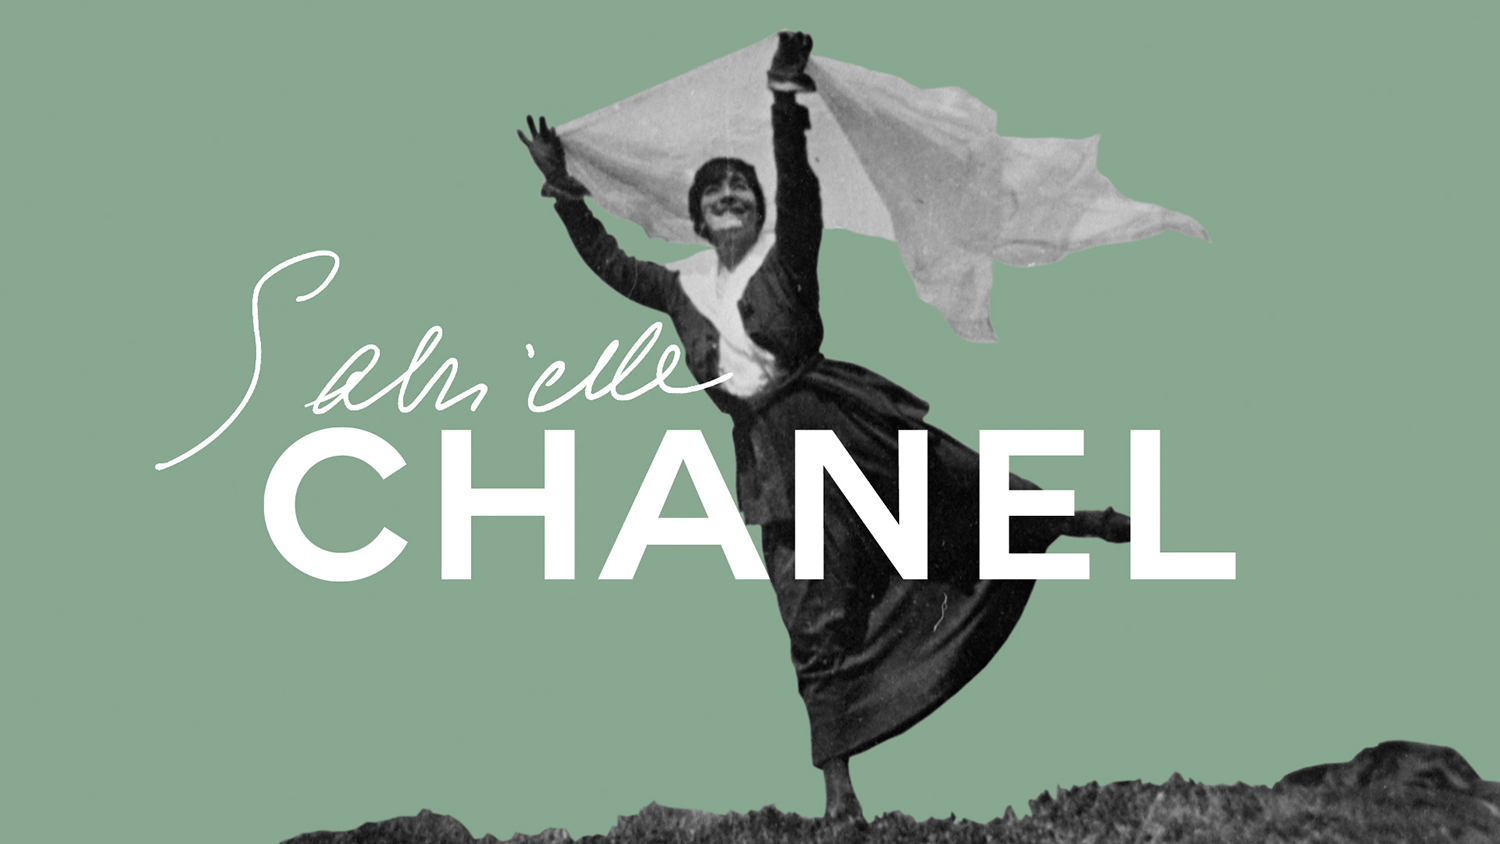 Inside Chanel releases 'Gabrielle Chanel & Dance' episode